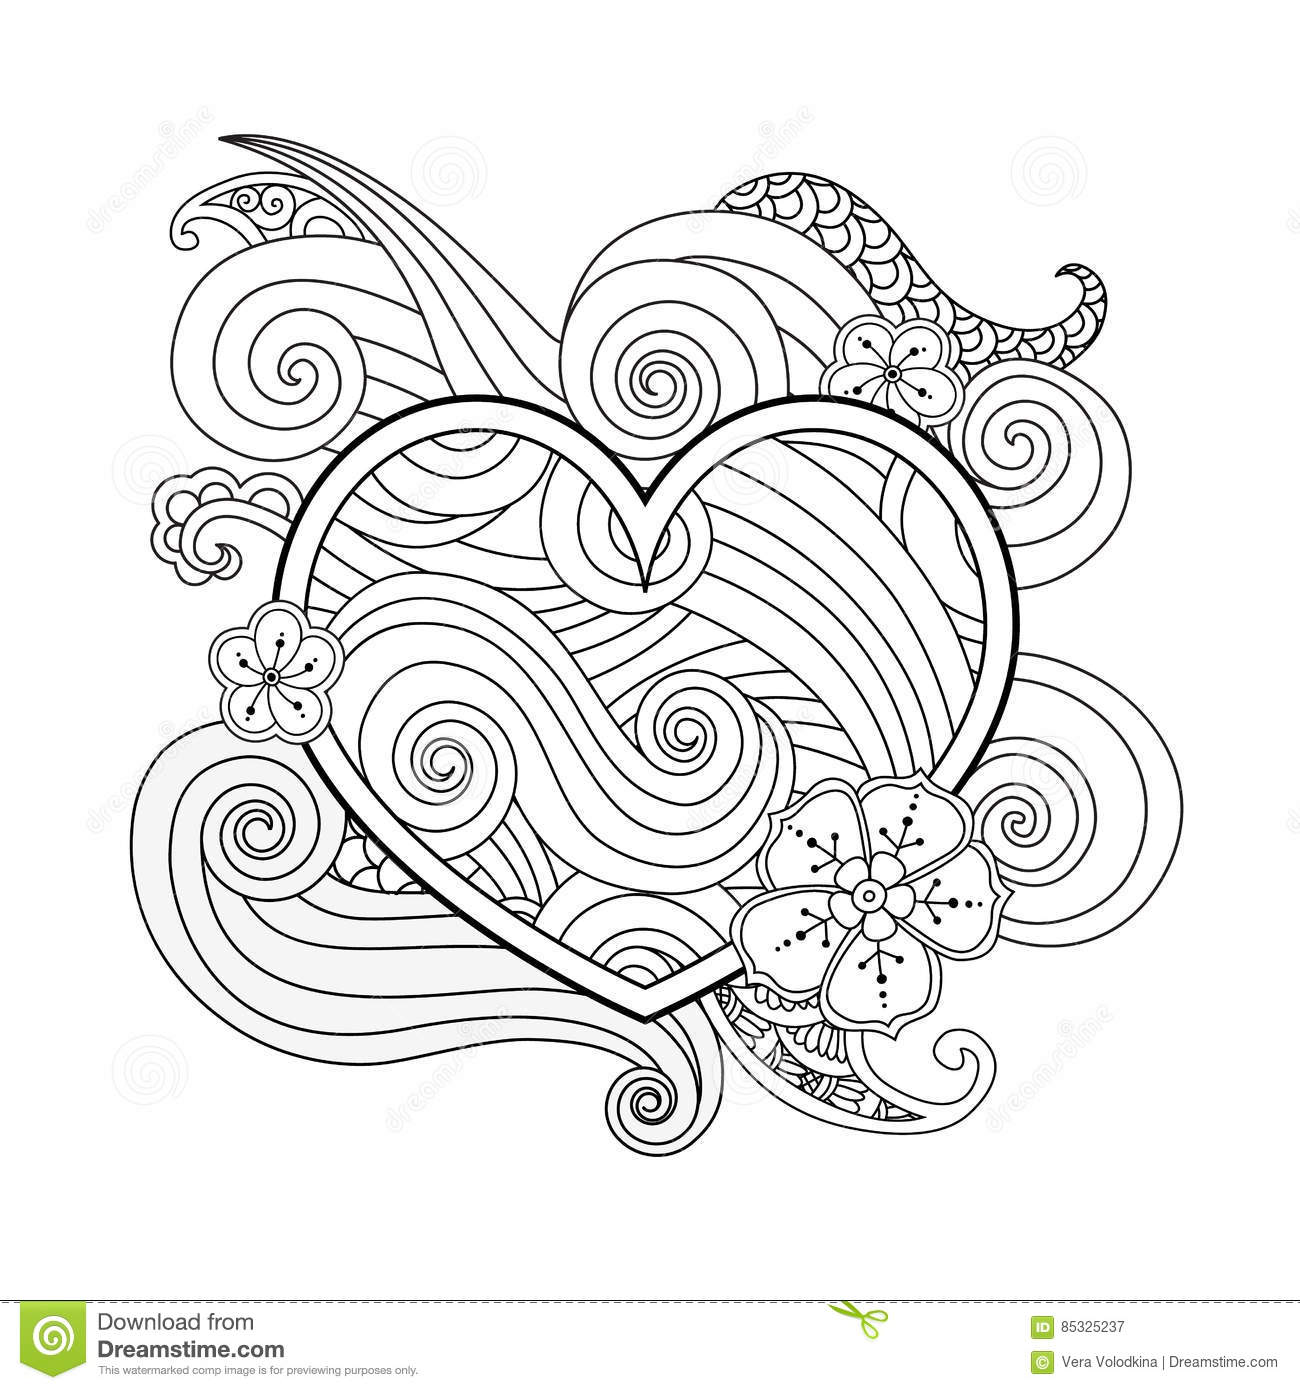 Coloring Page With Heart And Abstract Element Isolated